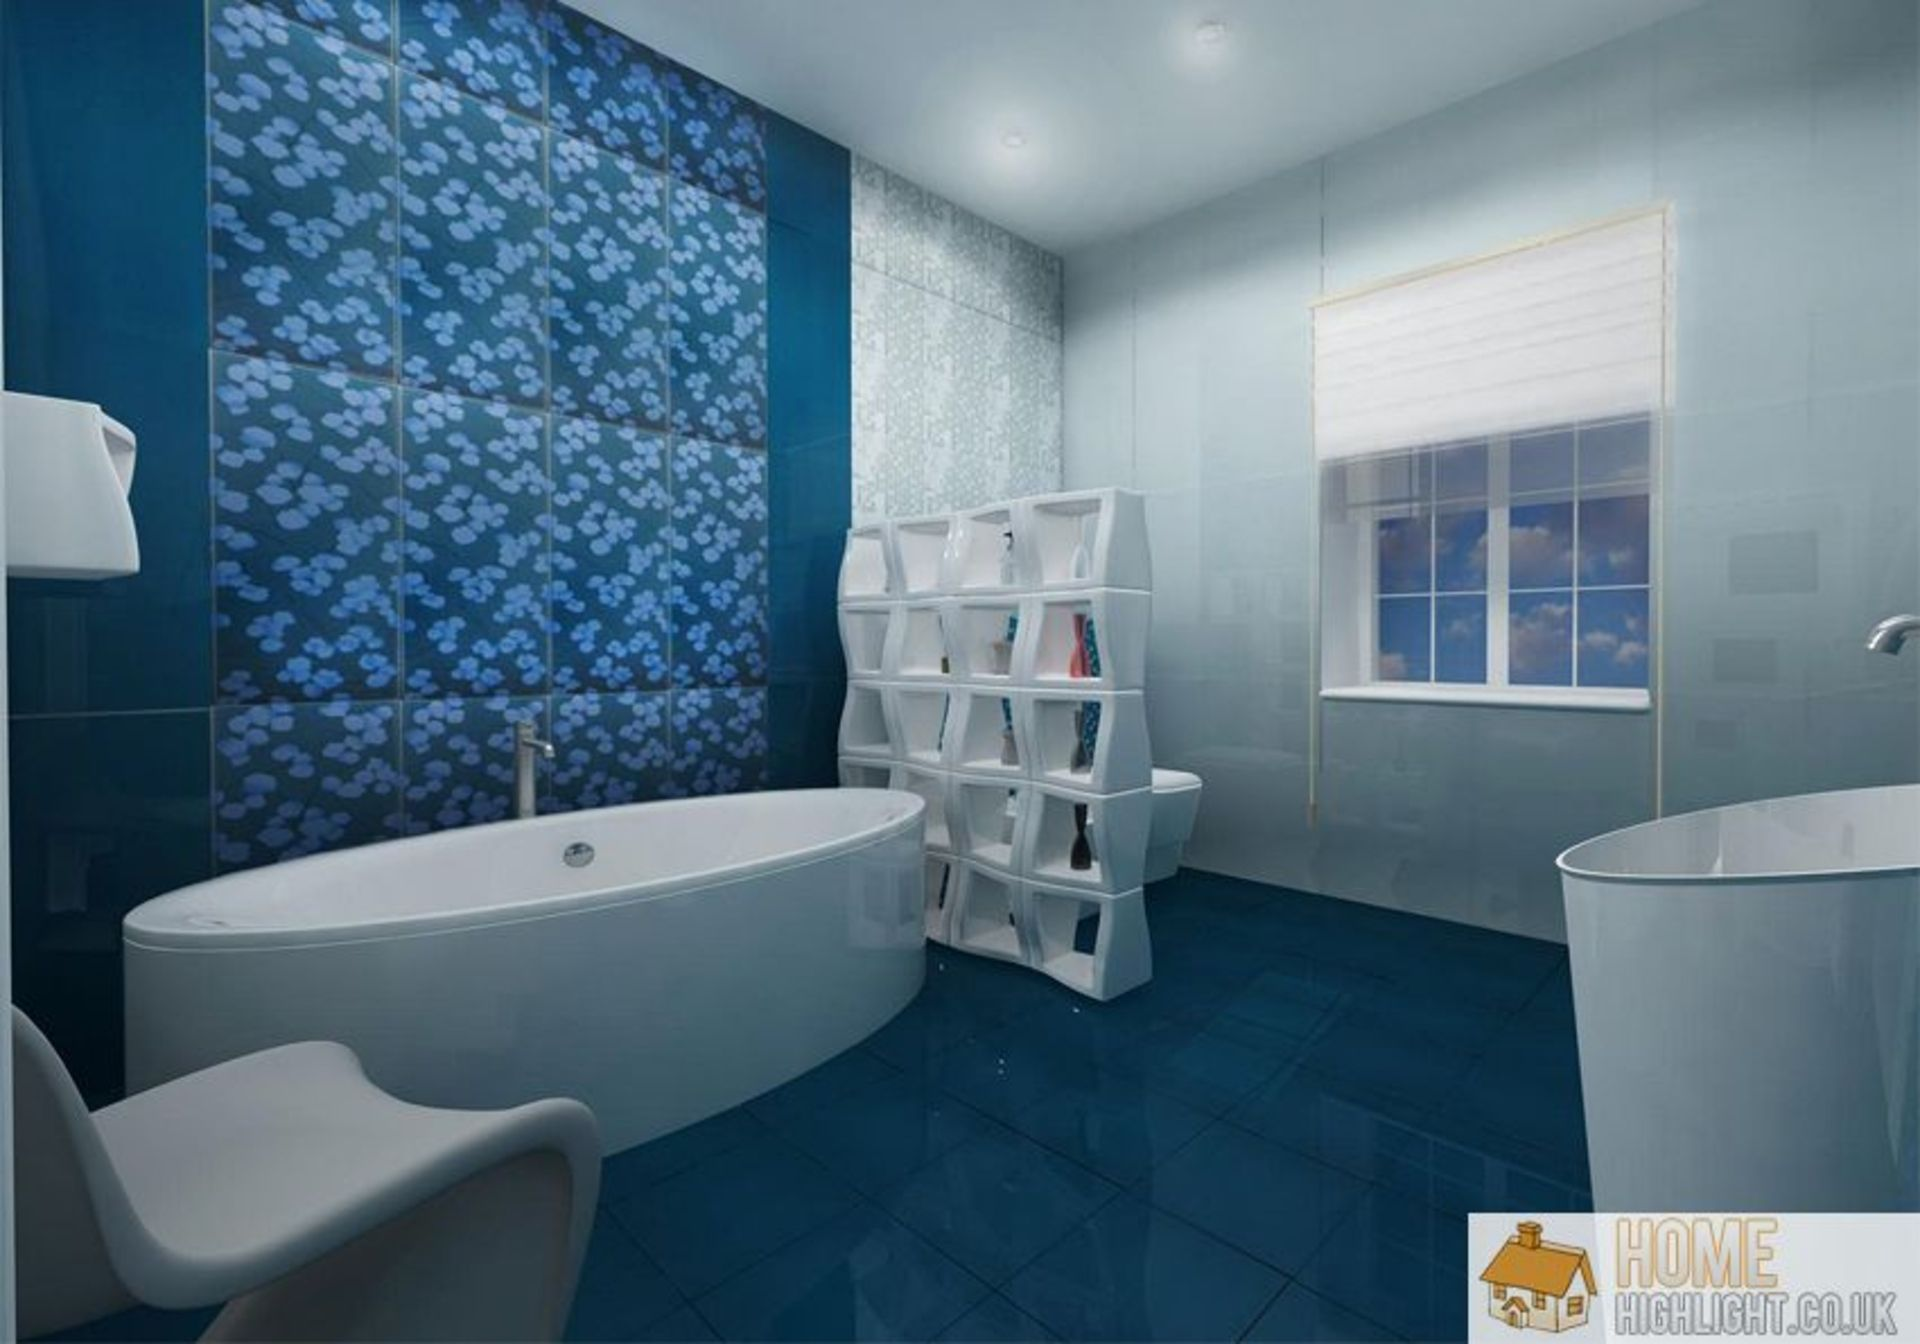 Futuristic Blue Bathroom Design Interior Images Bathroom Ideas Blue And Grey Bathroom Photo Bathroom Wall Tile Design Blue Bathroom Contemporary Bathroom Tiles